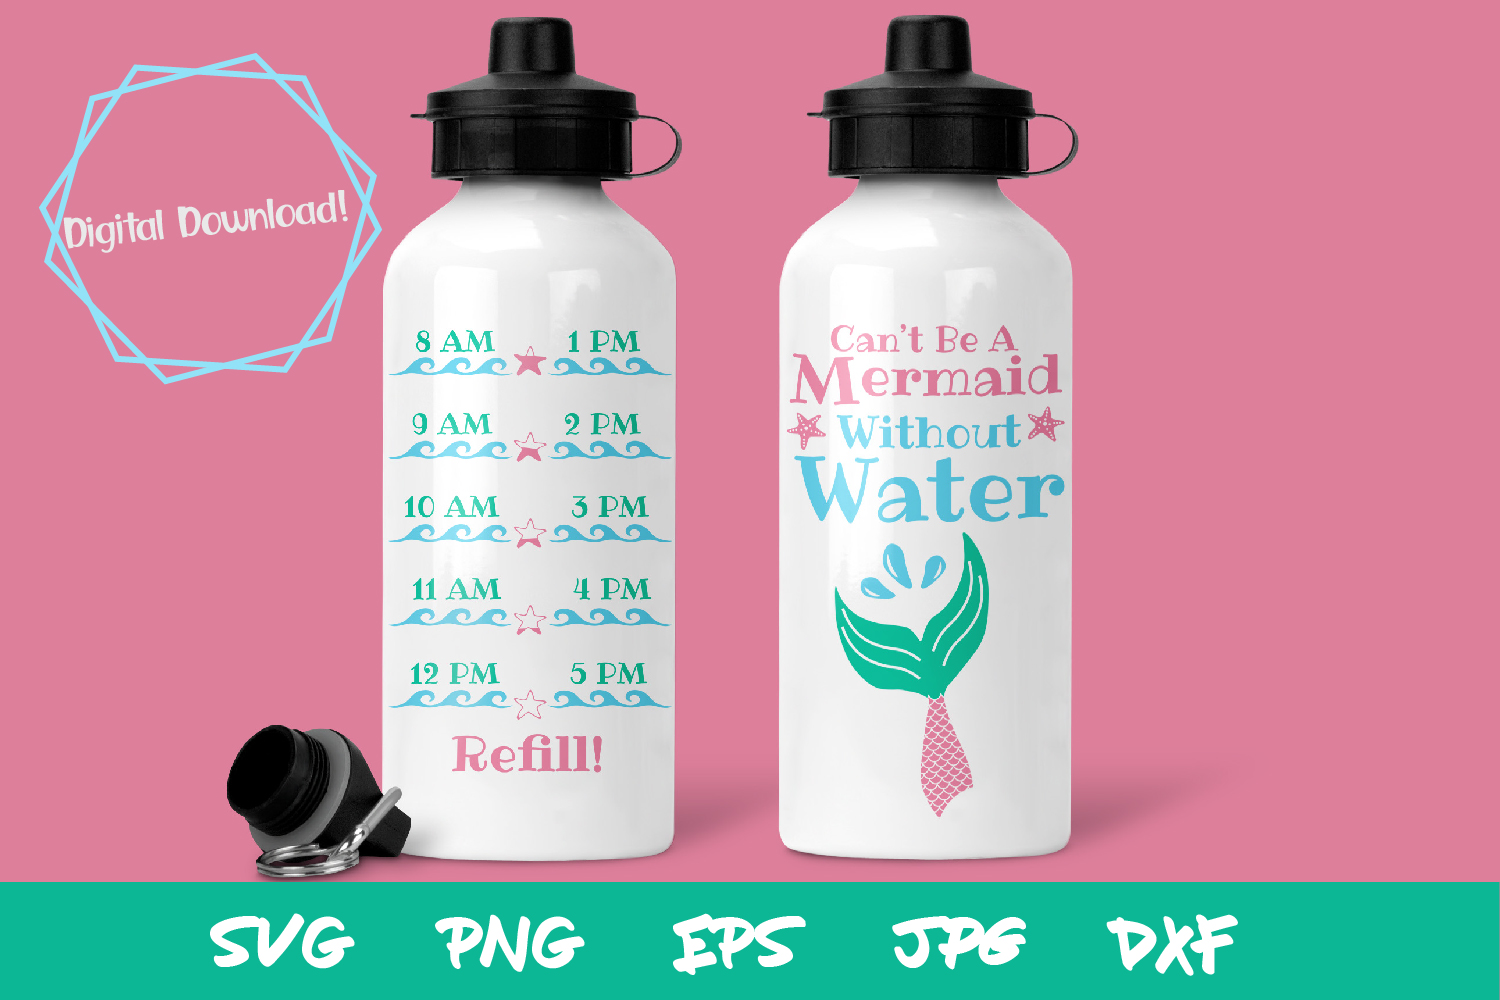 Mermaid SVG, waterbottle SVG, Kids SVG files, sublimation example image 1